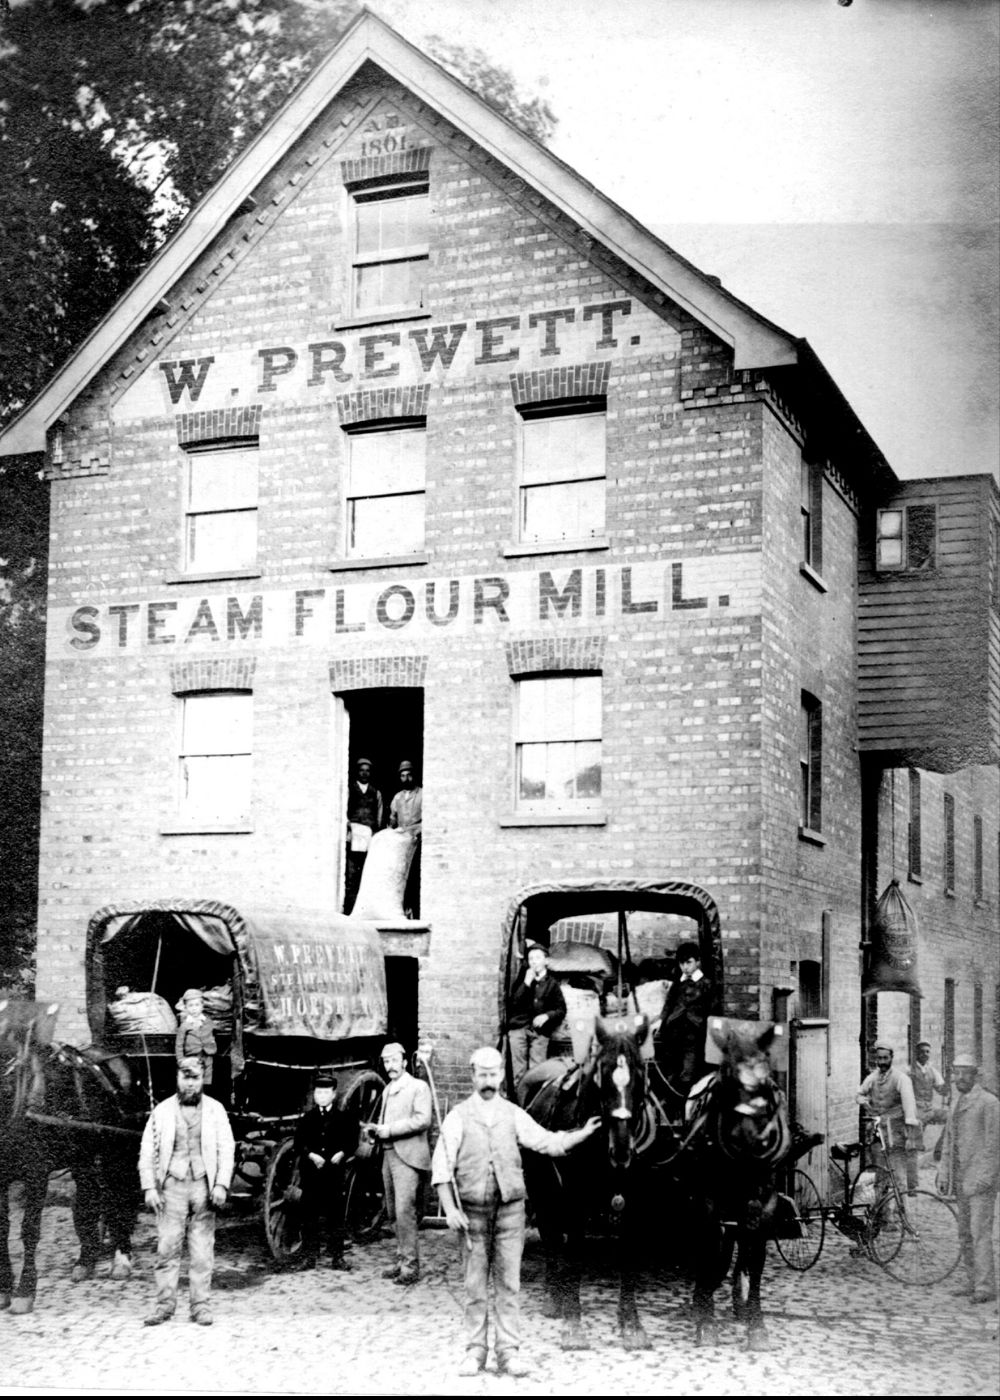 Prewett's Mill, Horsham. Four storey, brick-built structure. A group of men, boys, and horse and carts are at the front of the building.